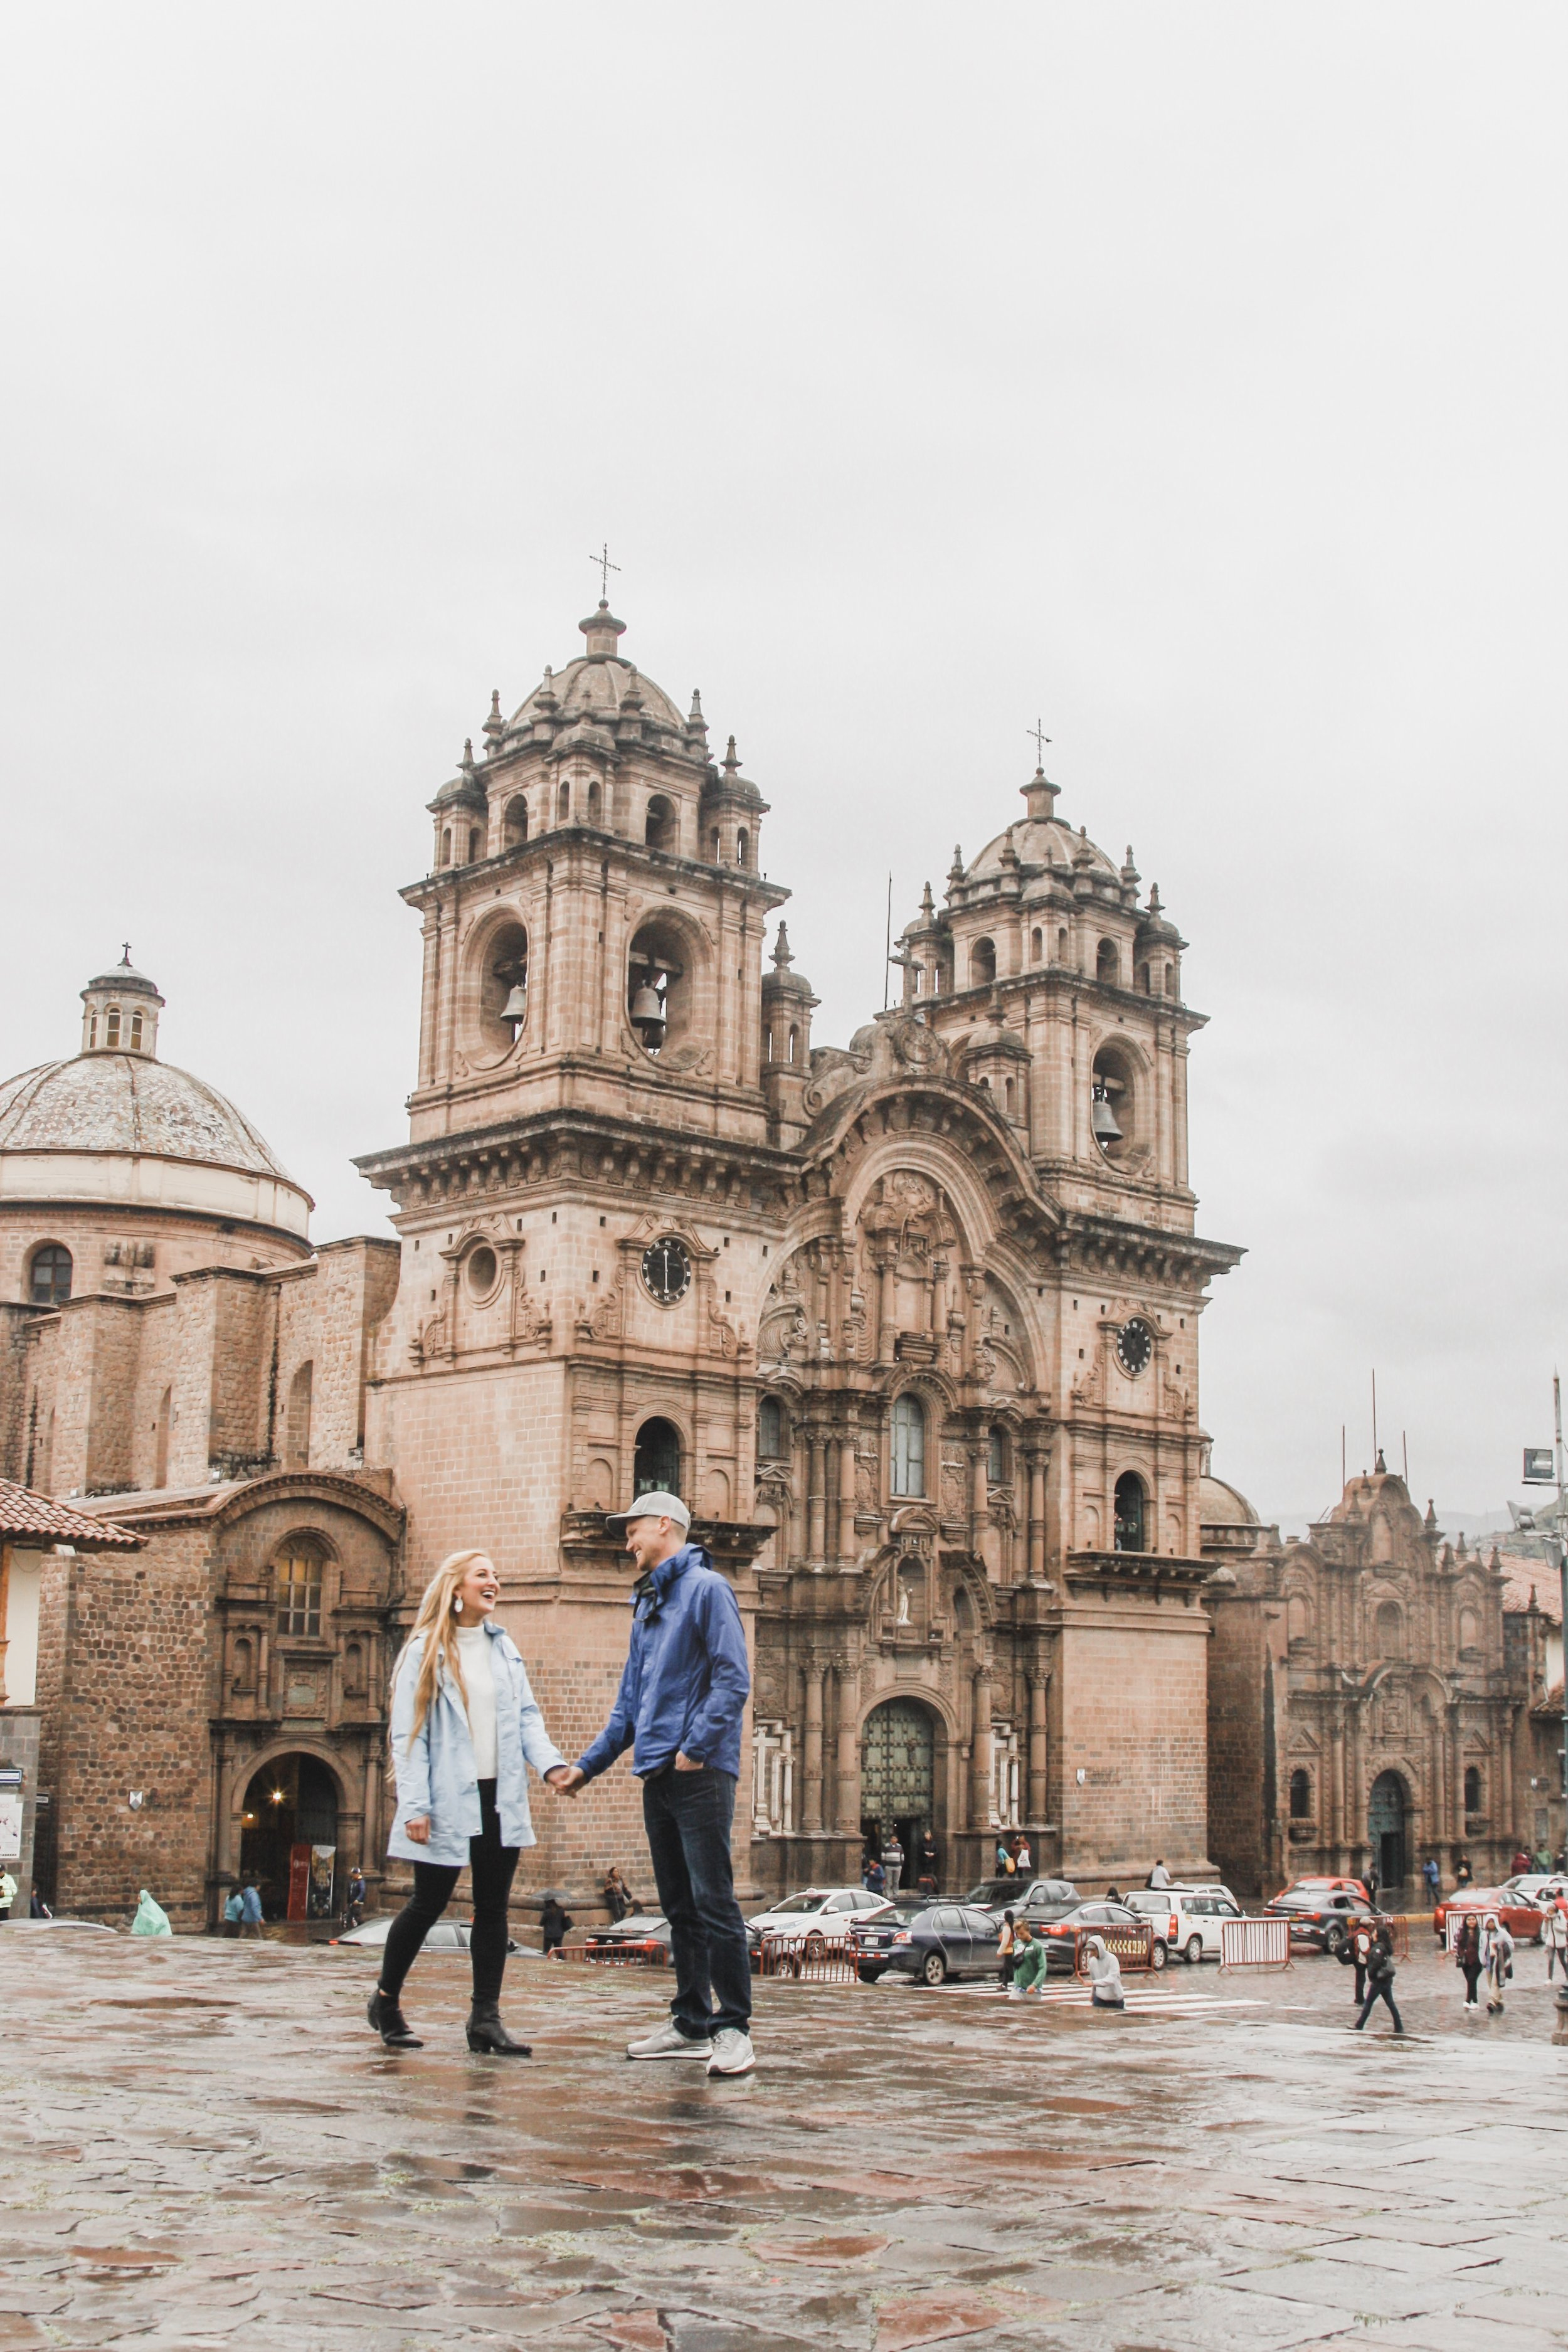 Our guide snapped this photo of us with my DSLR in Cusco, Peru.